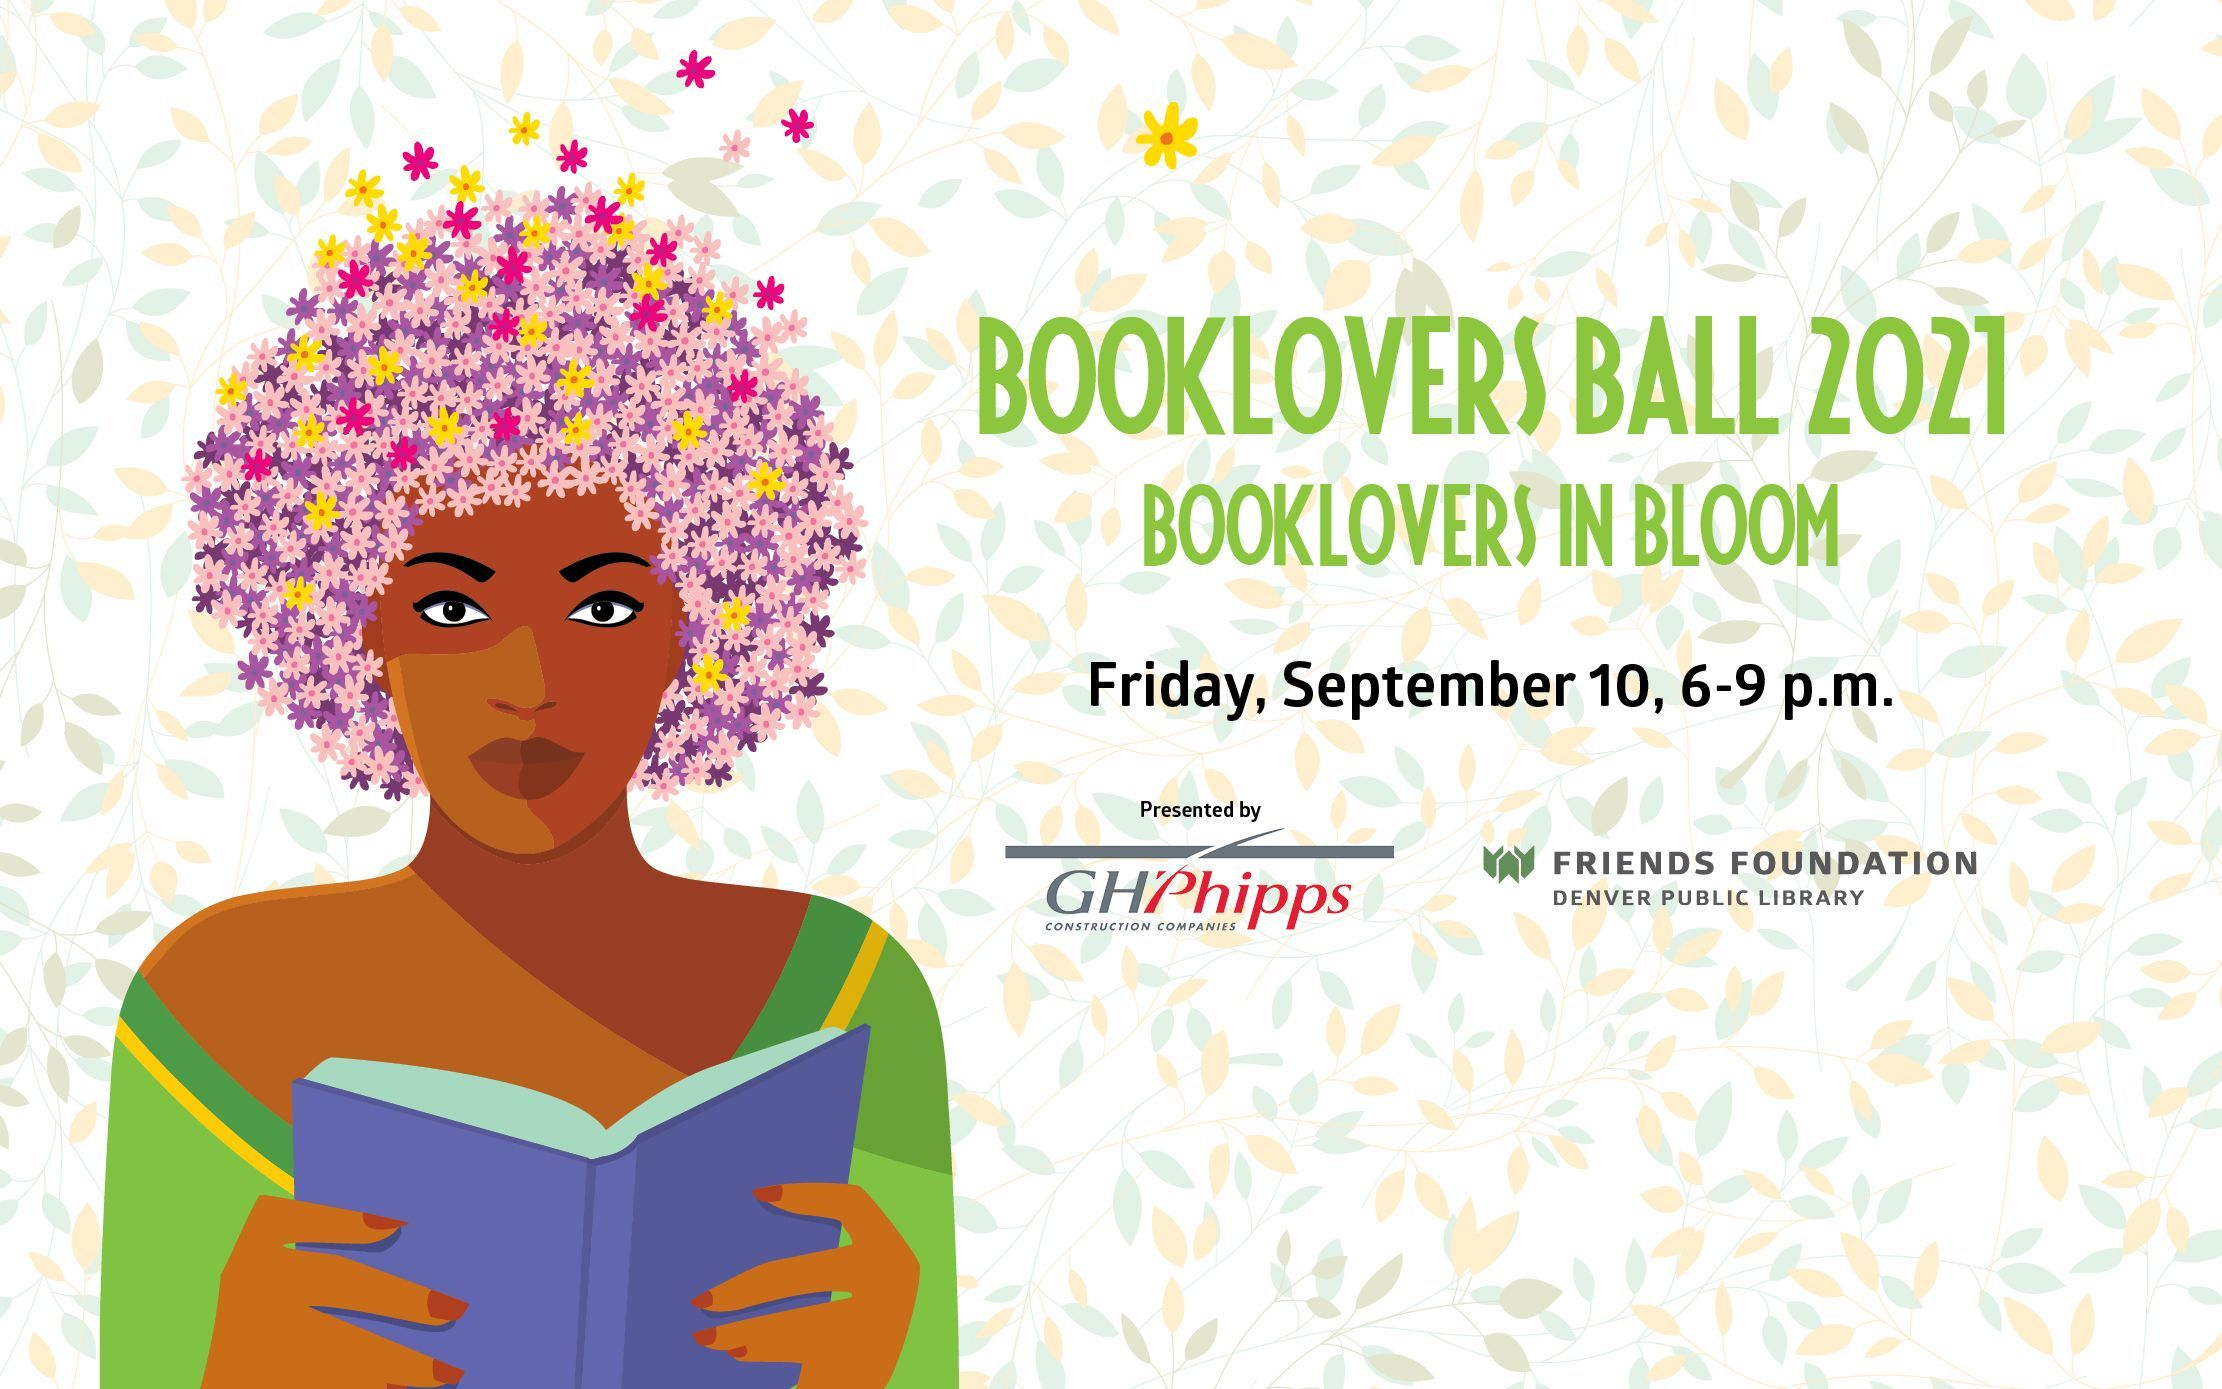 Booklovers Ball 2021, Friday, September 10, at 6:00 p.m., presented by GH Phipps.